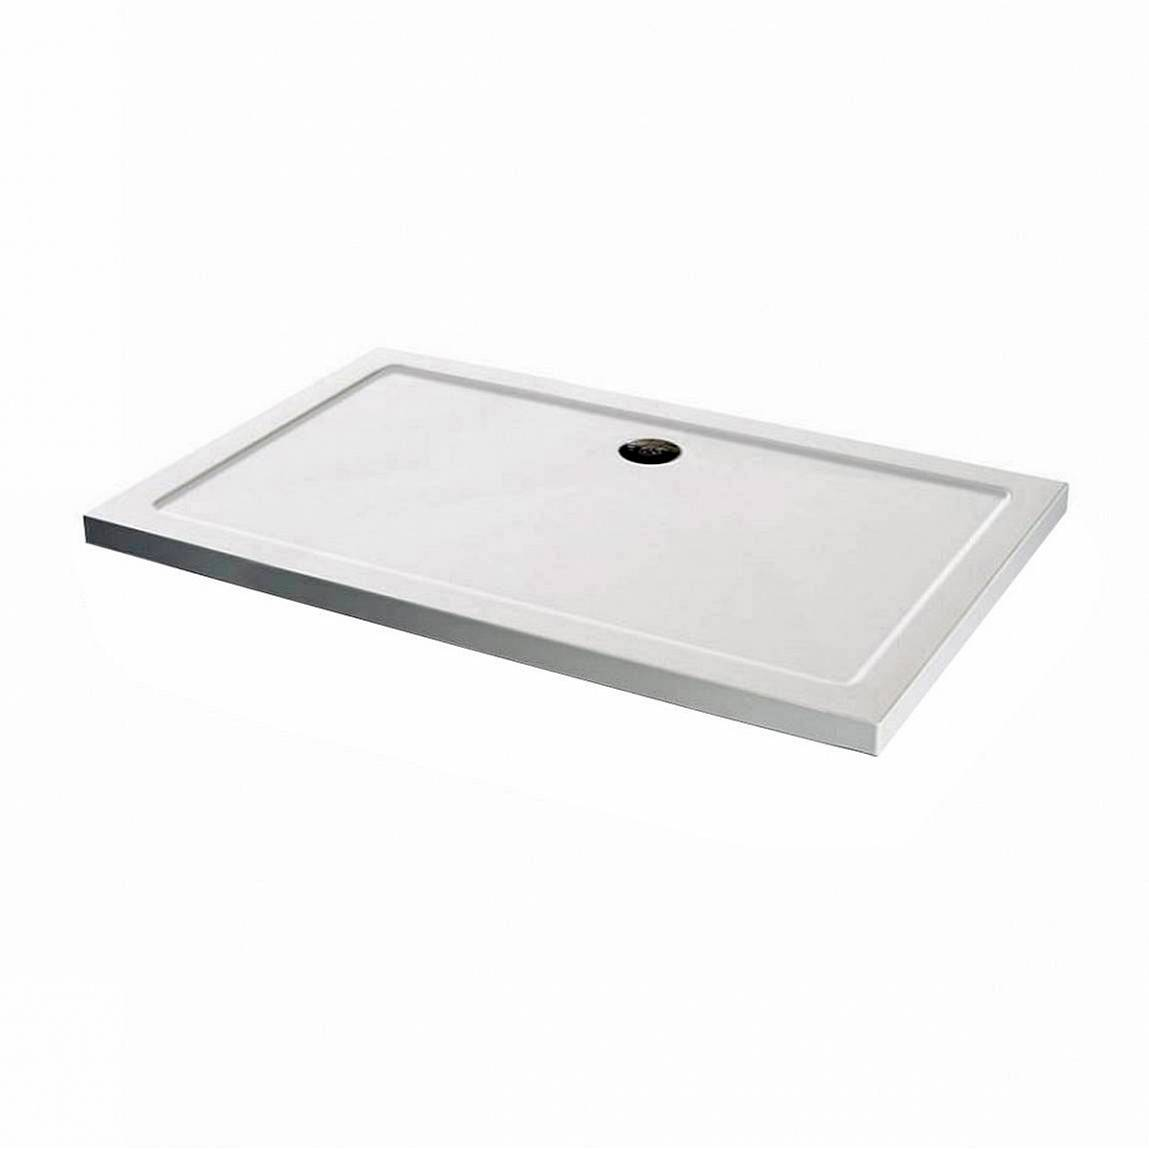 Image of Rectangular Stone Shower Tray 1700 x 750